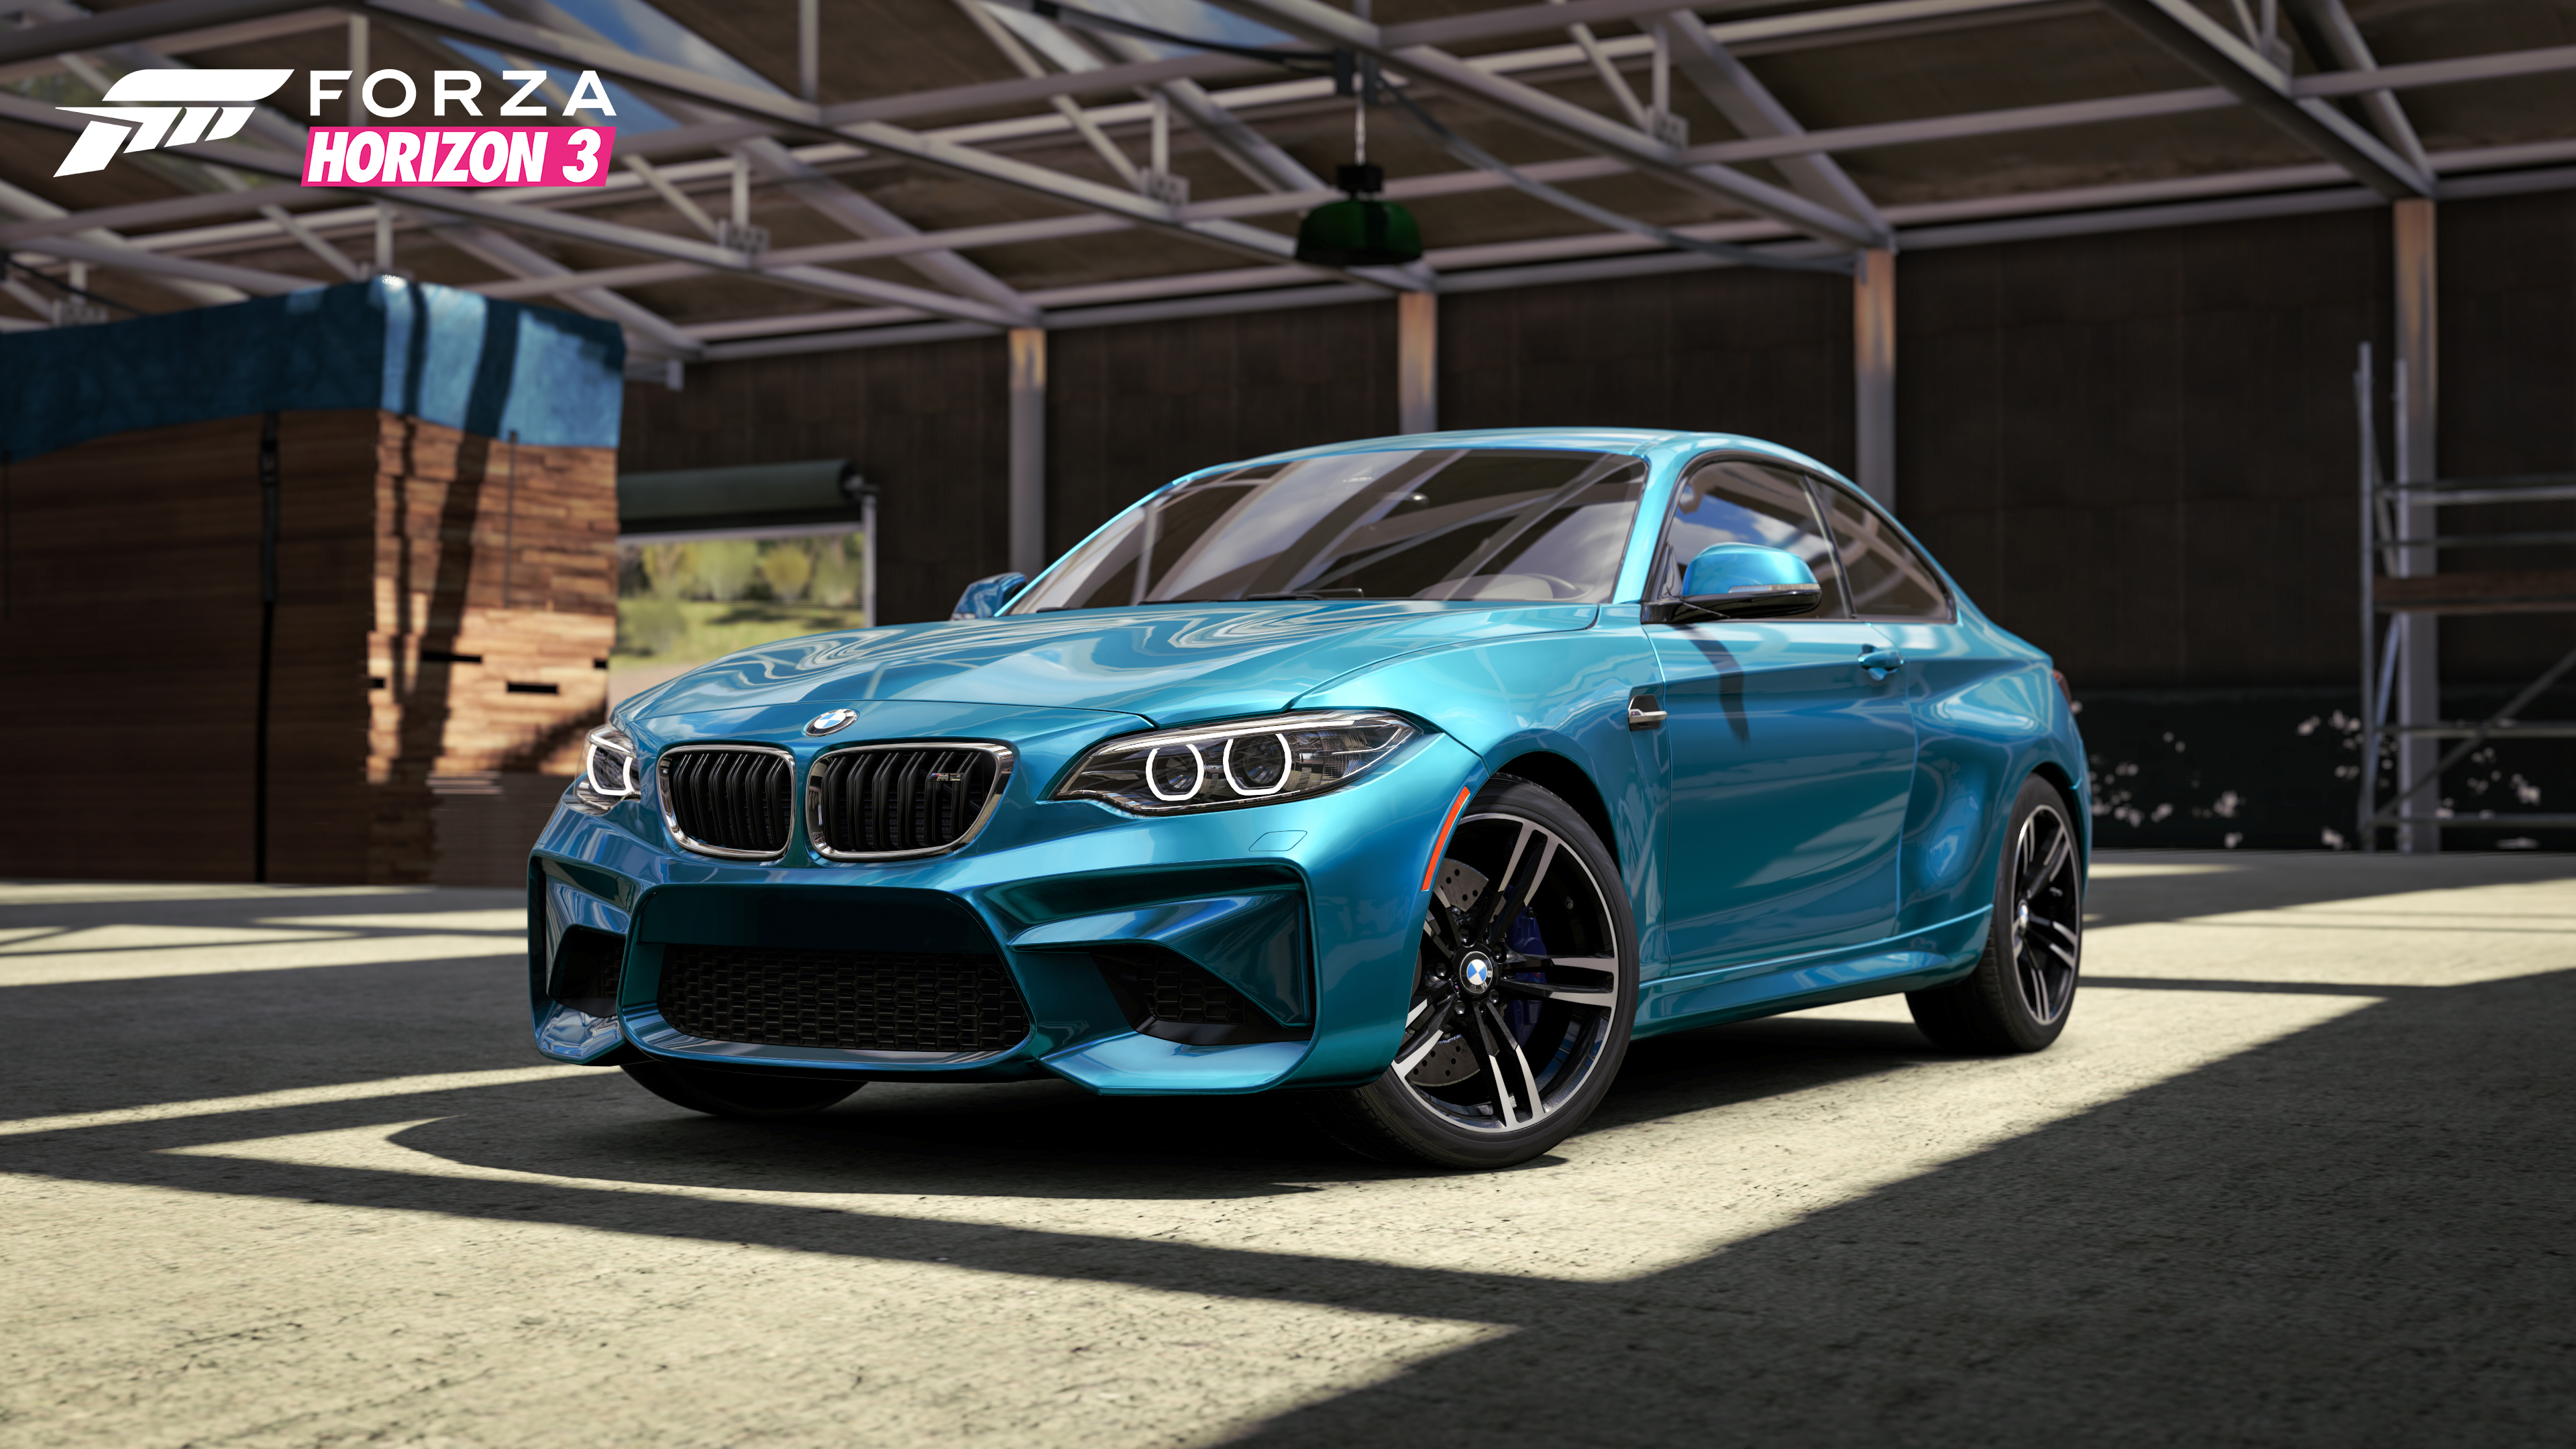 2016 BMW M2 Coupé in Forza Horizon 3